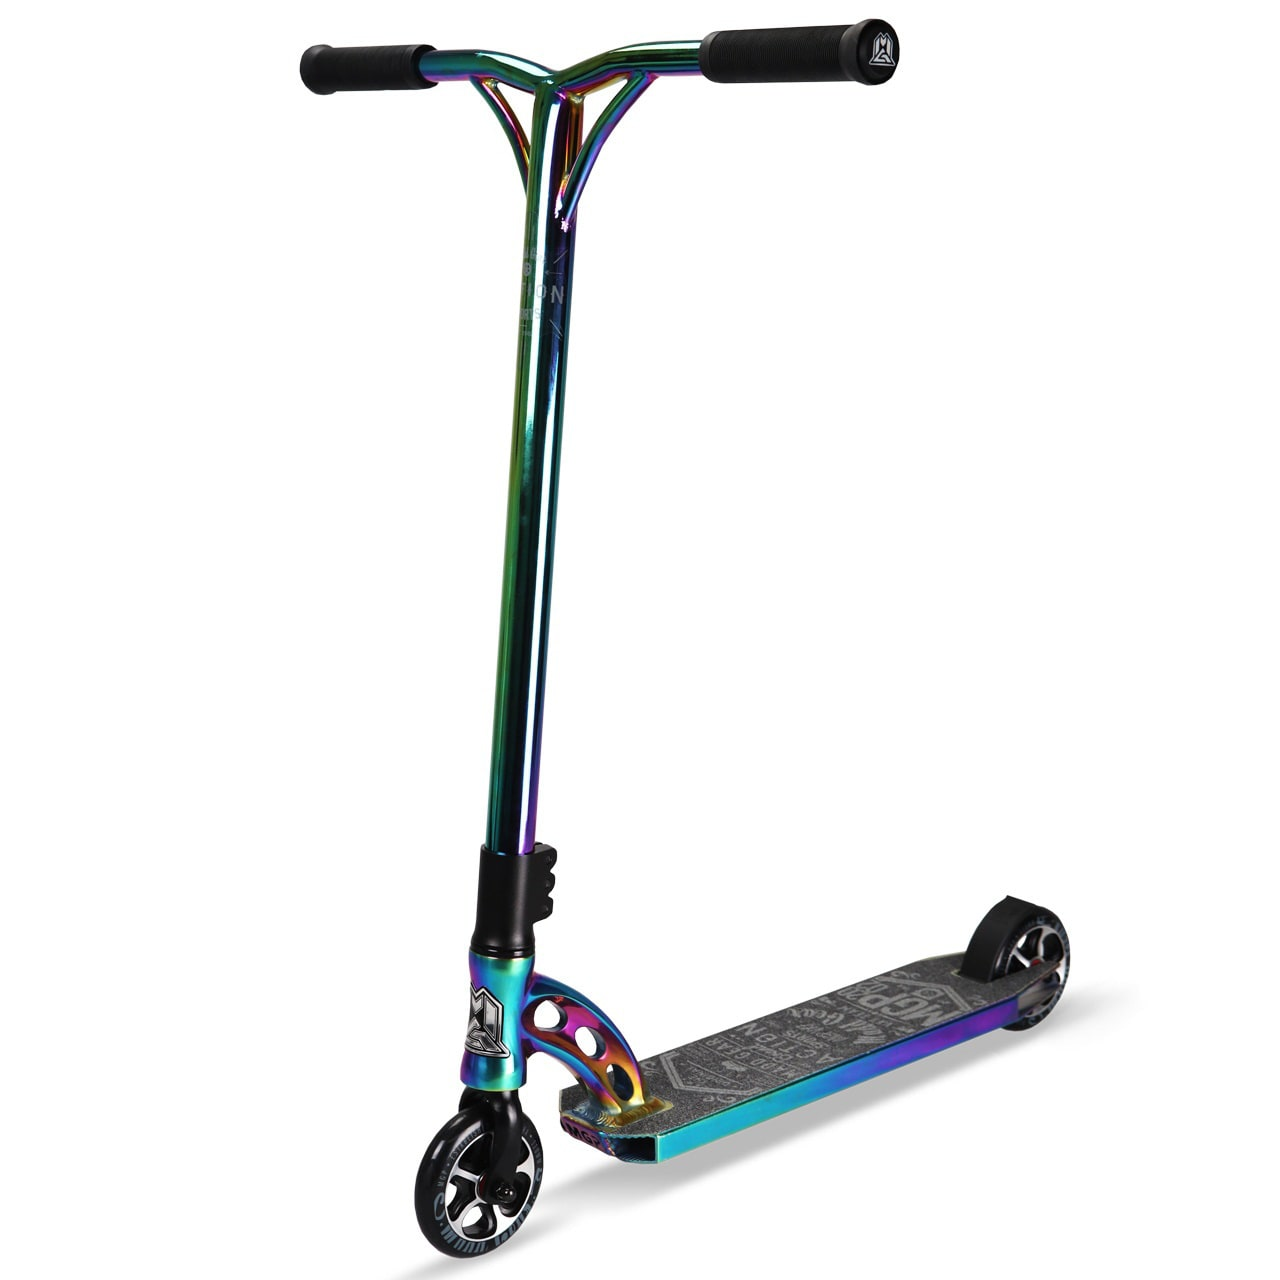 mgp vx7 team le stunt scooter neochrome black neochrome browse all mgp scooters madd. Black Bedroom Furniture Sets. Home Design Ideas